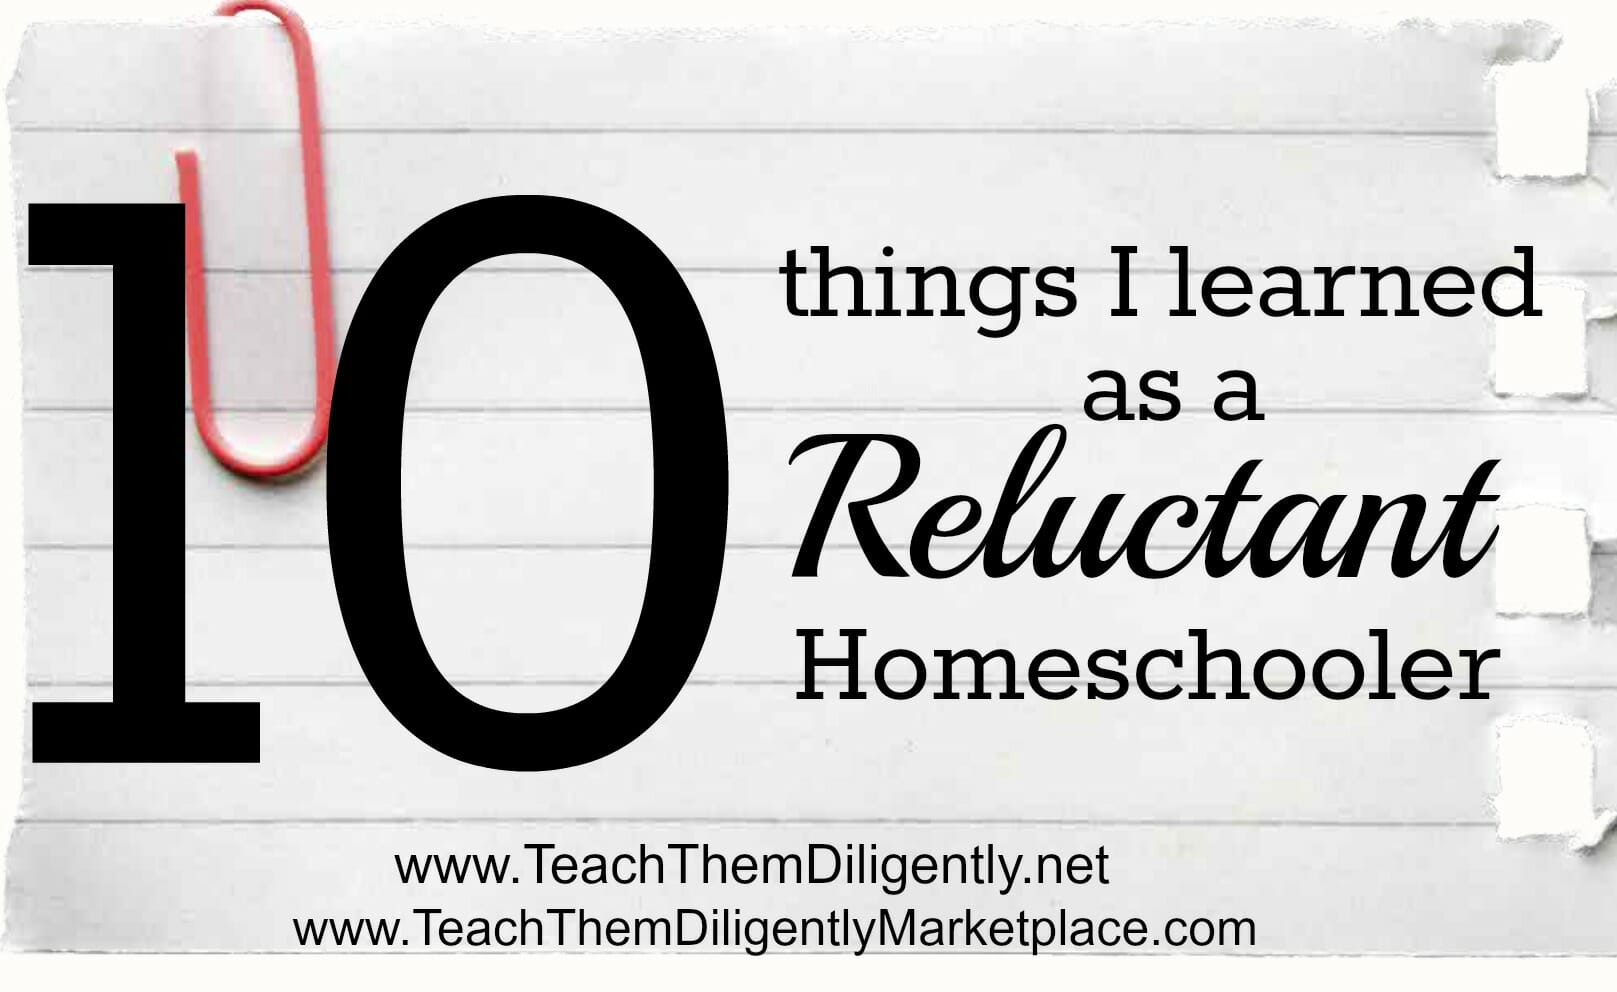 Reluctant Homeschooler at Teach Them Diligently